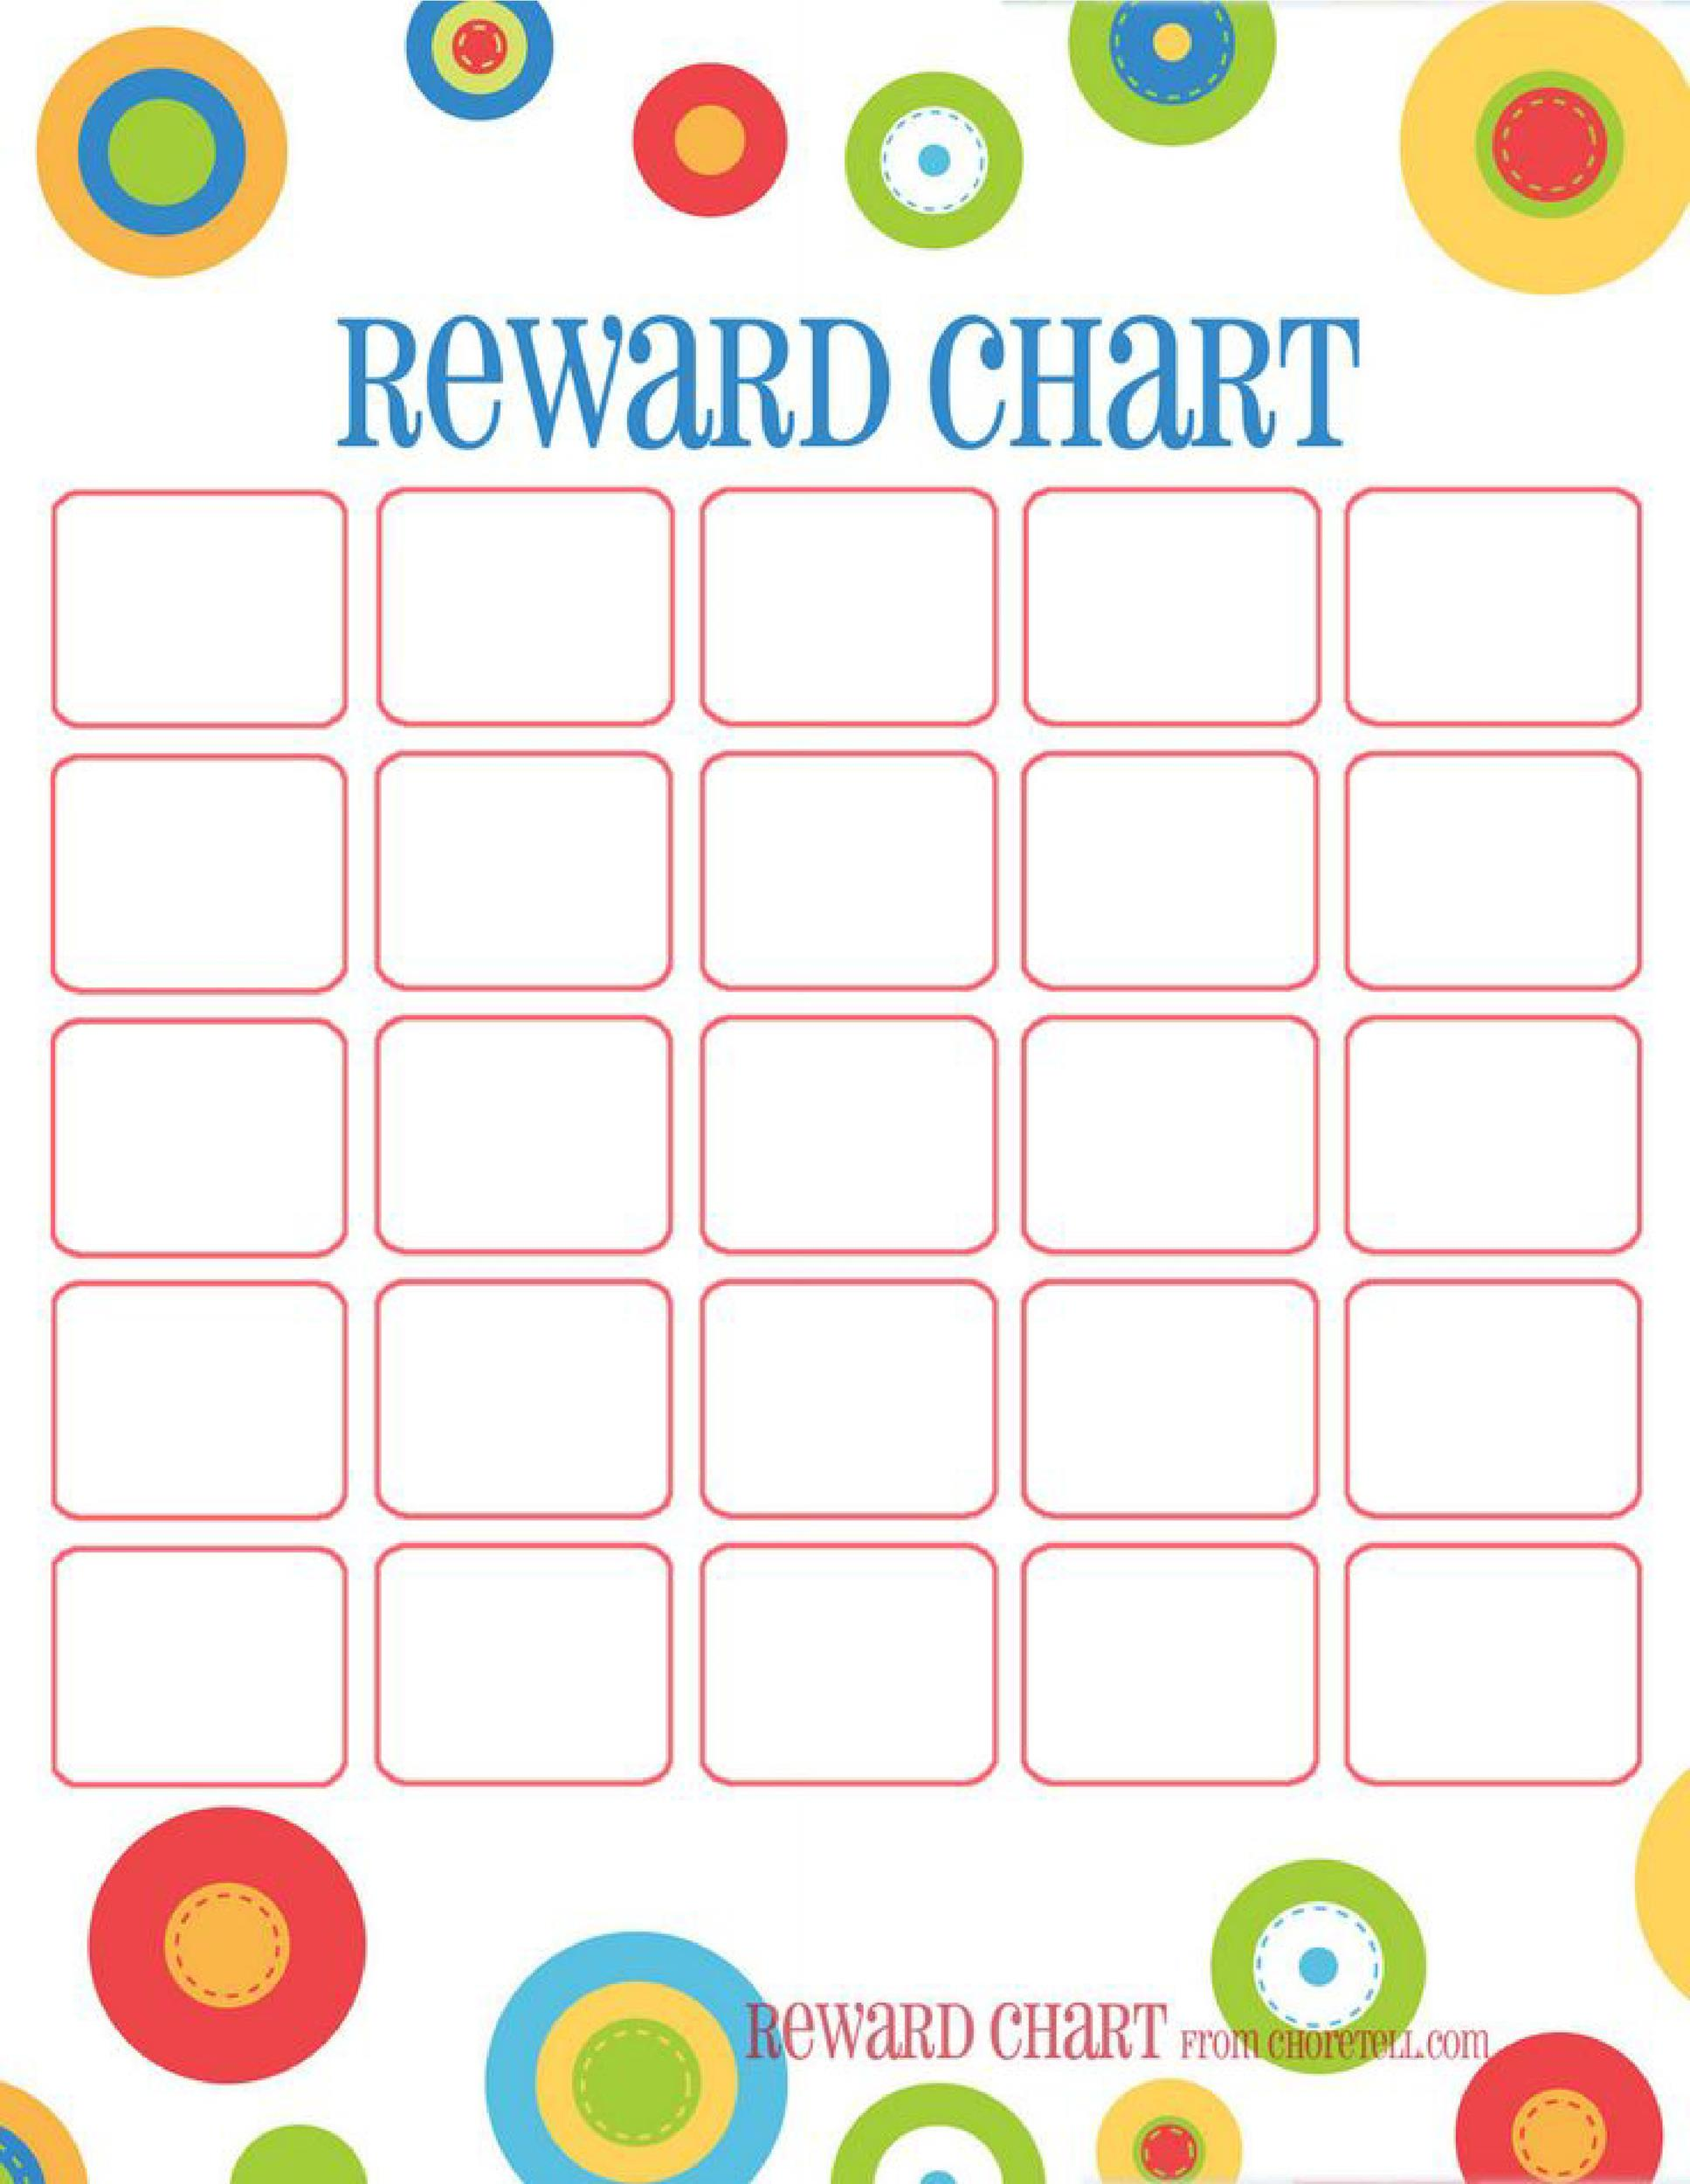 44 Printable Reward Charts for Kids (PDF, Excel & Word)